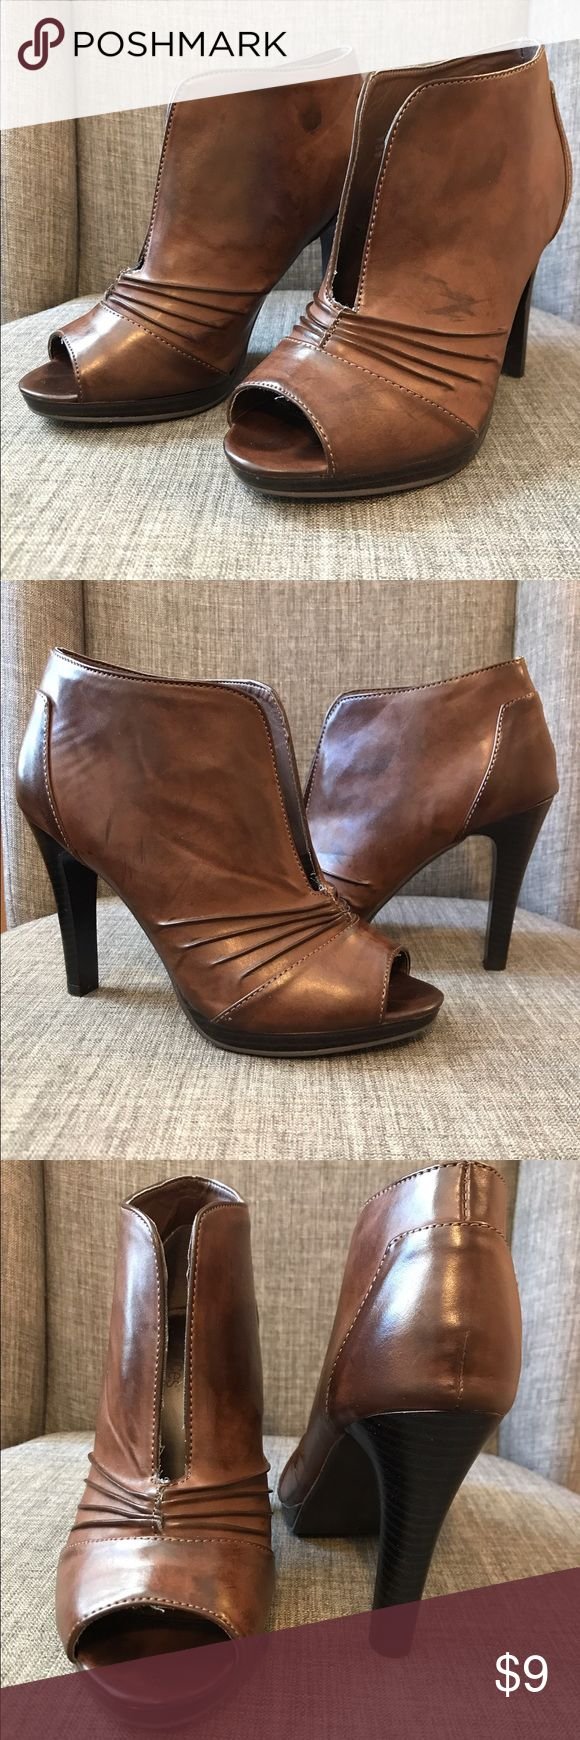 Maurices shoes Used Maurices shoe. In good condition. Maurices Shoes Heels